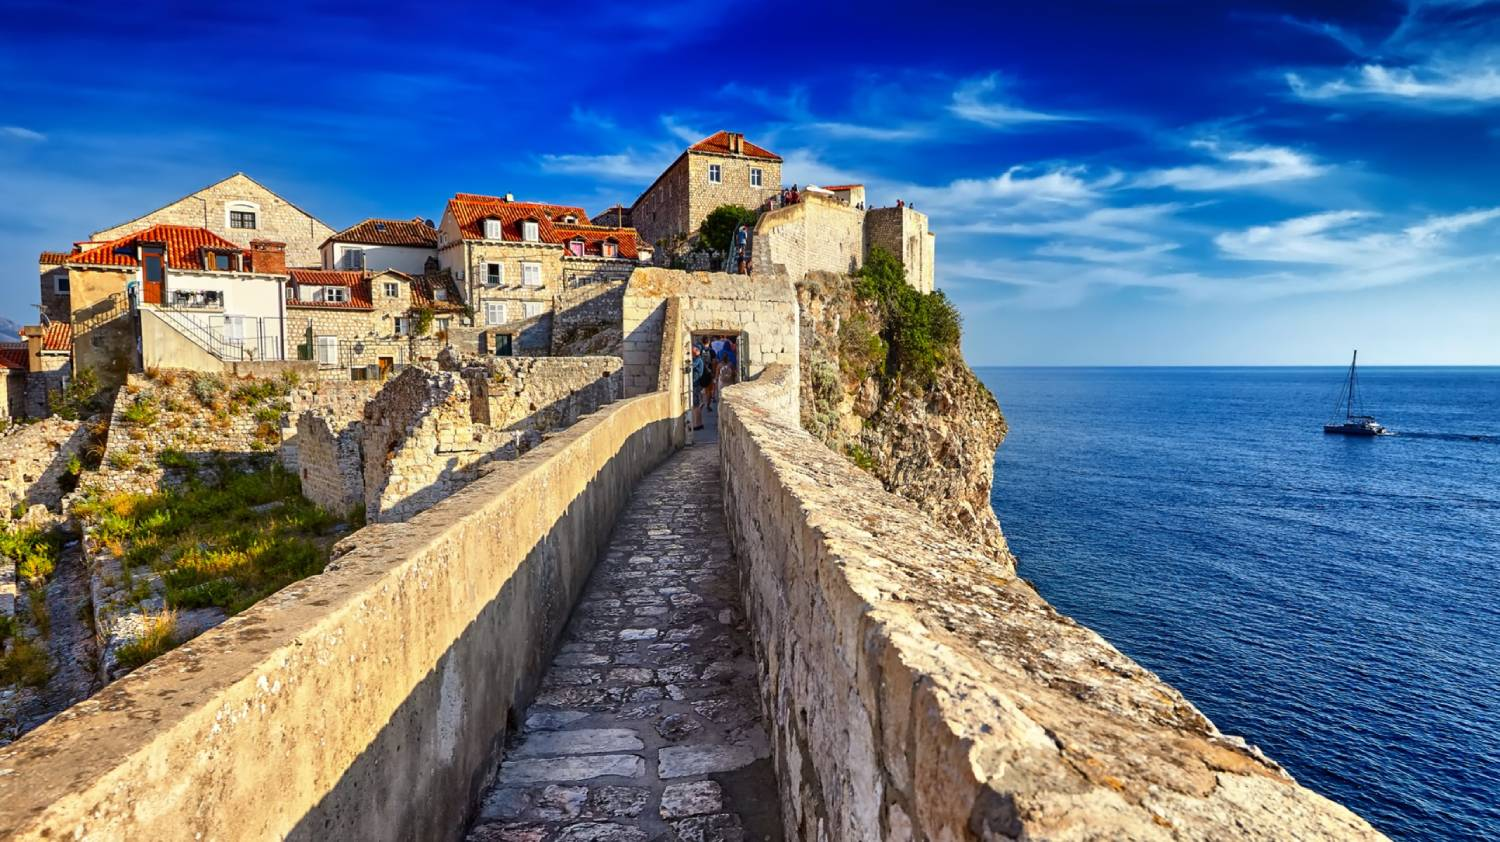 Walls of Dubrovnik - Things To Do In Dubrovnik